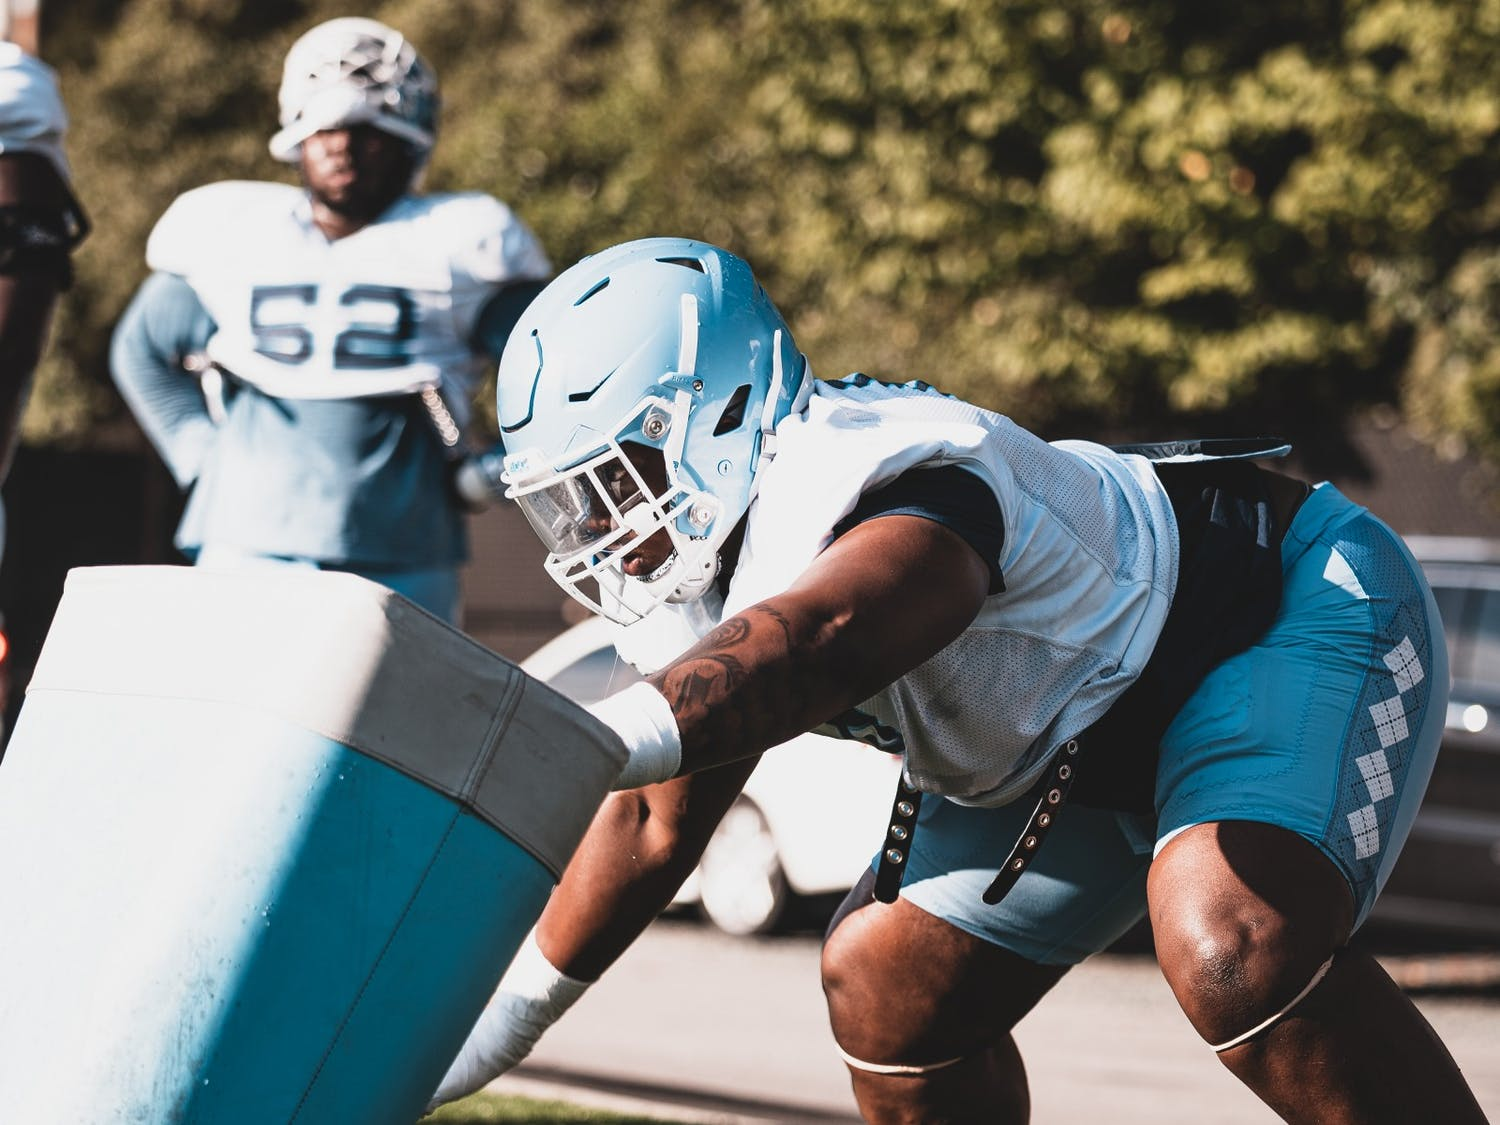 Keeshawn Silver practices at Kenan Stadium. Photo courtesy of UNC Athletics.